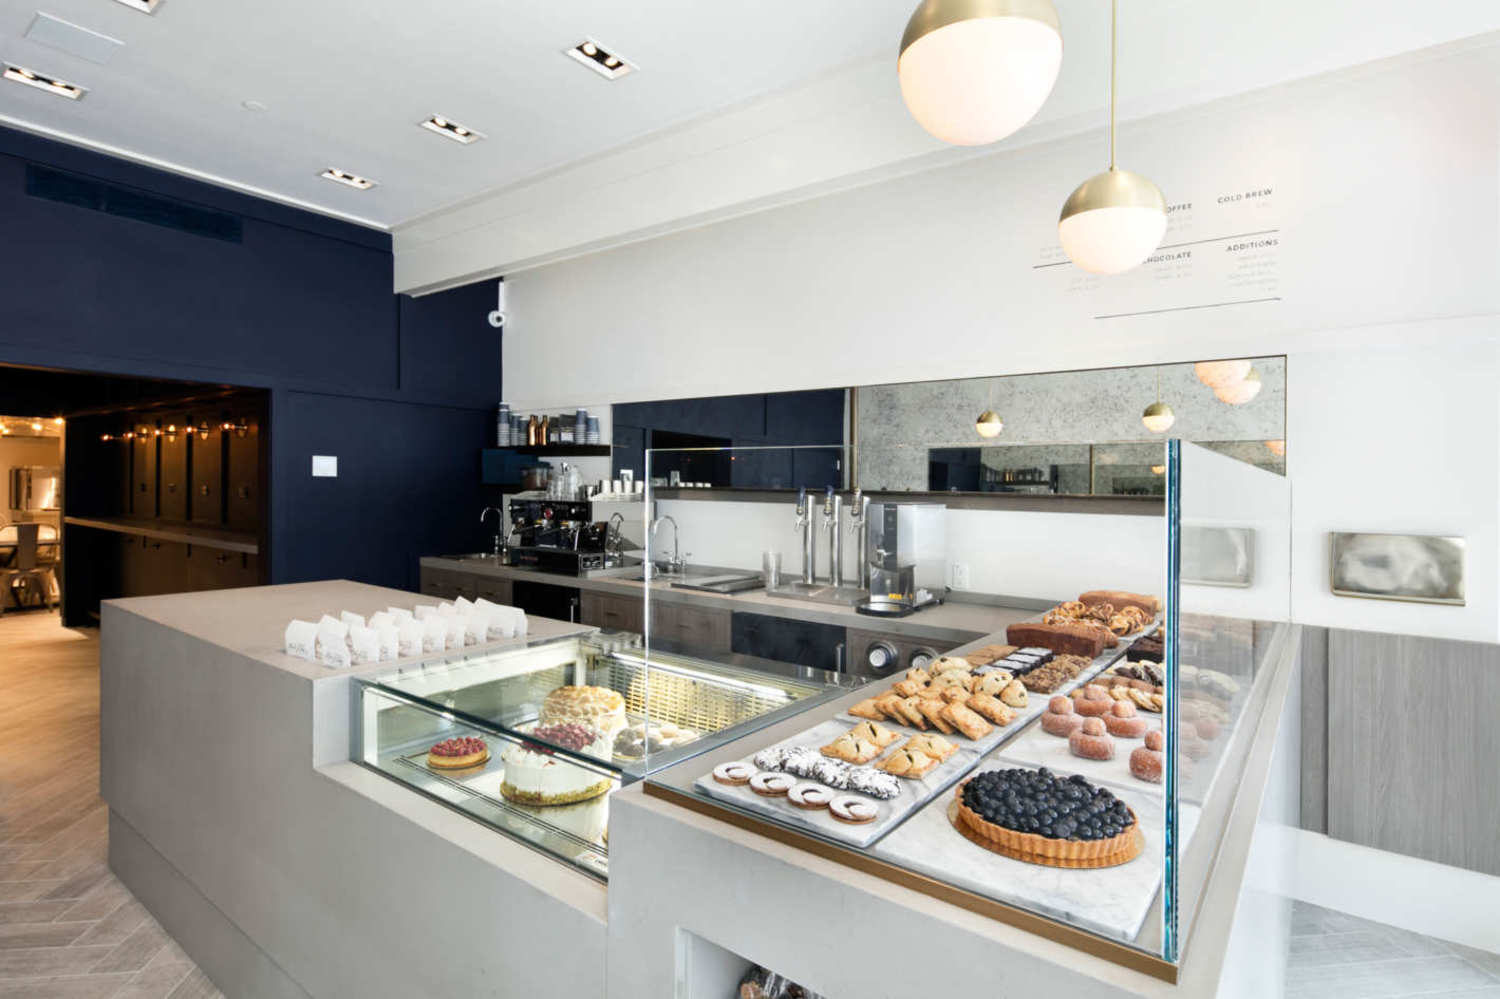 The design is clean and modern, with the pastries at center stage.